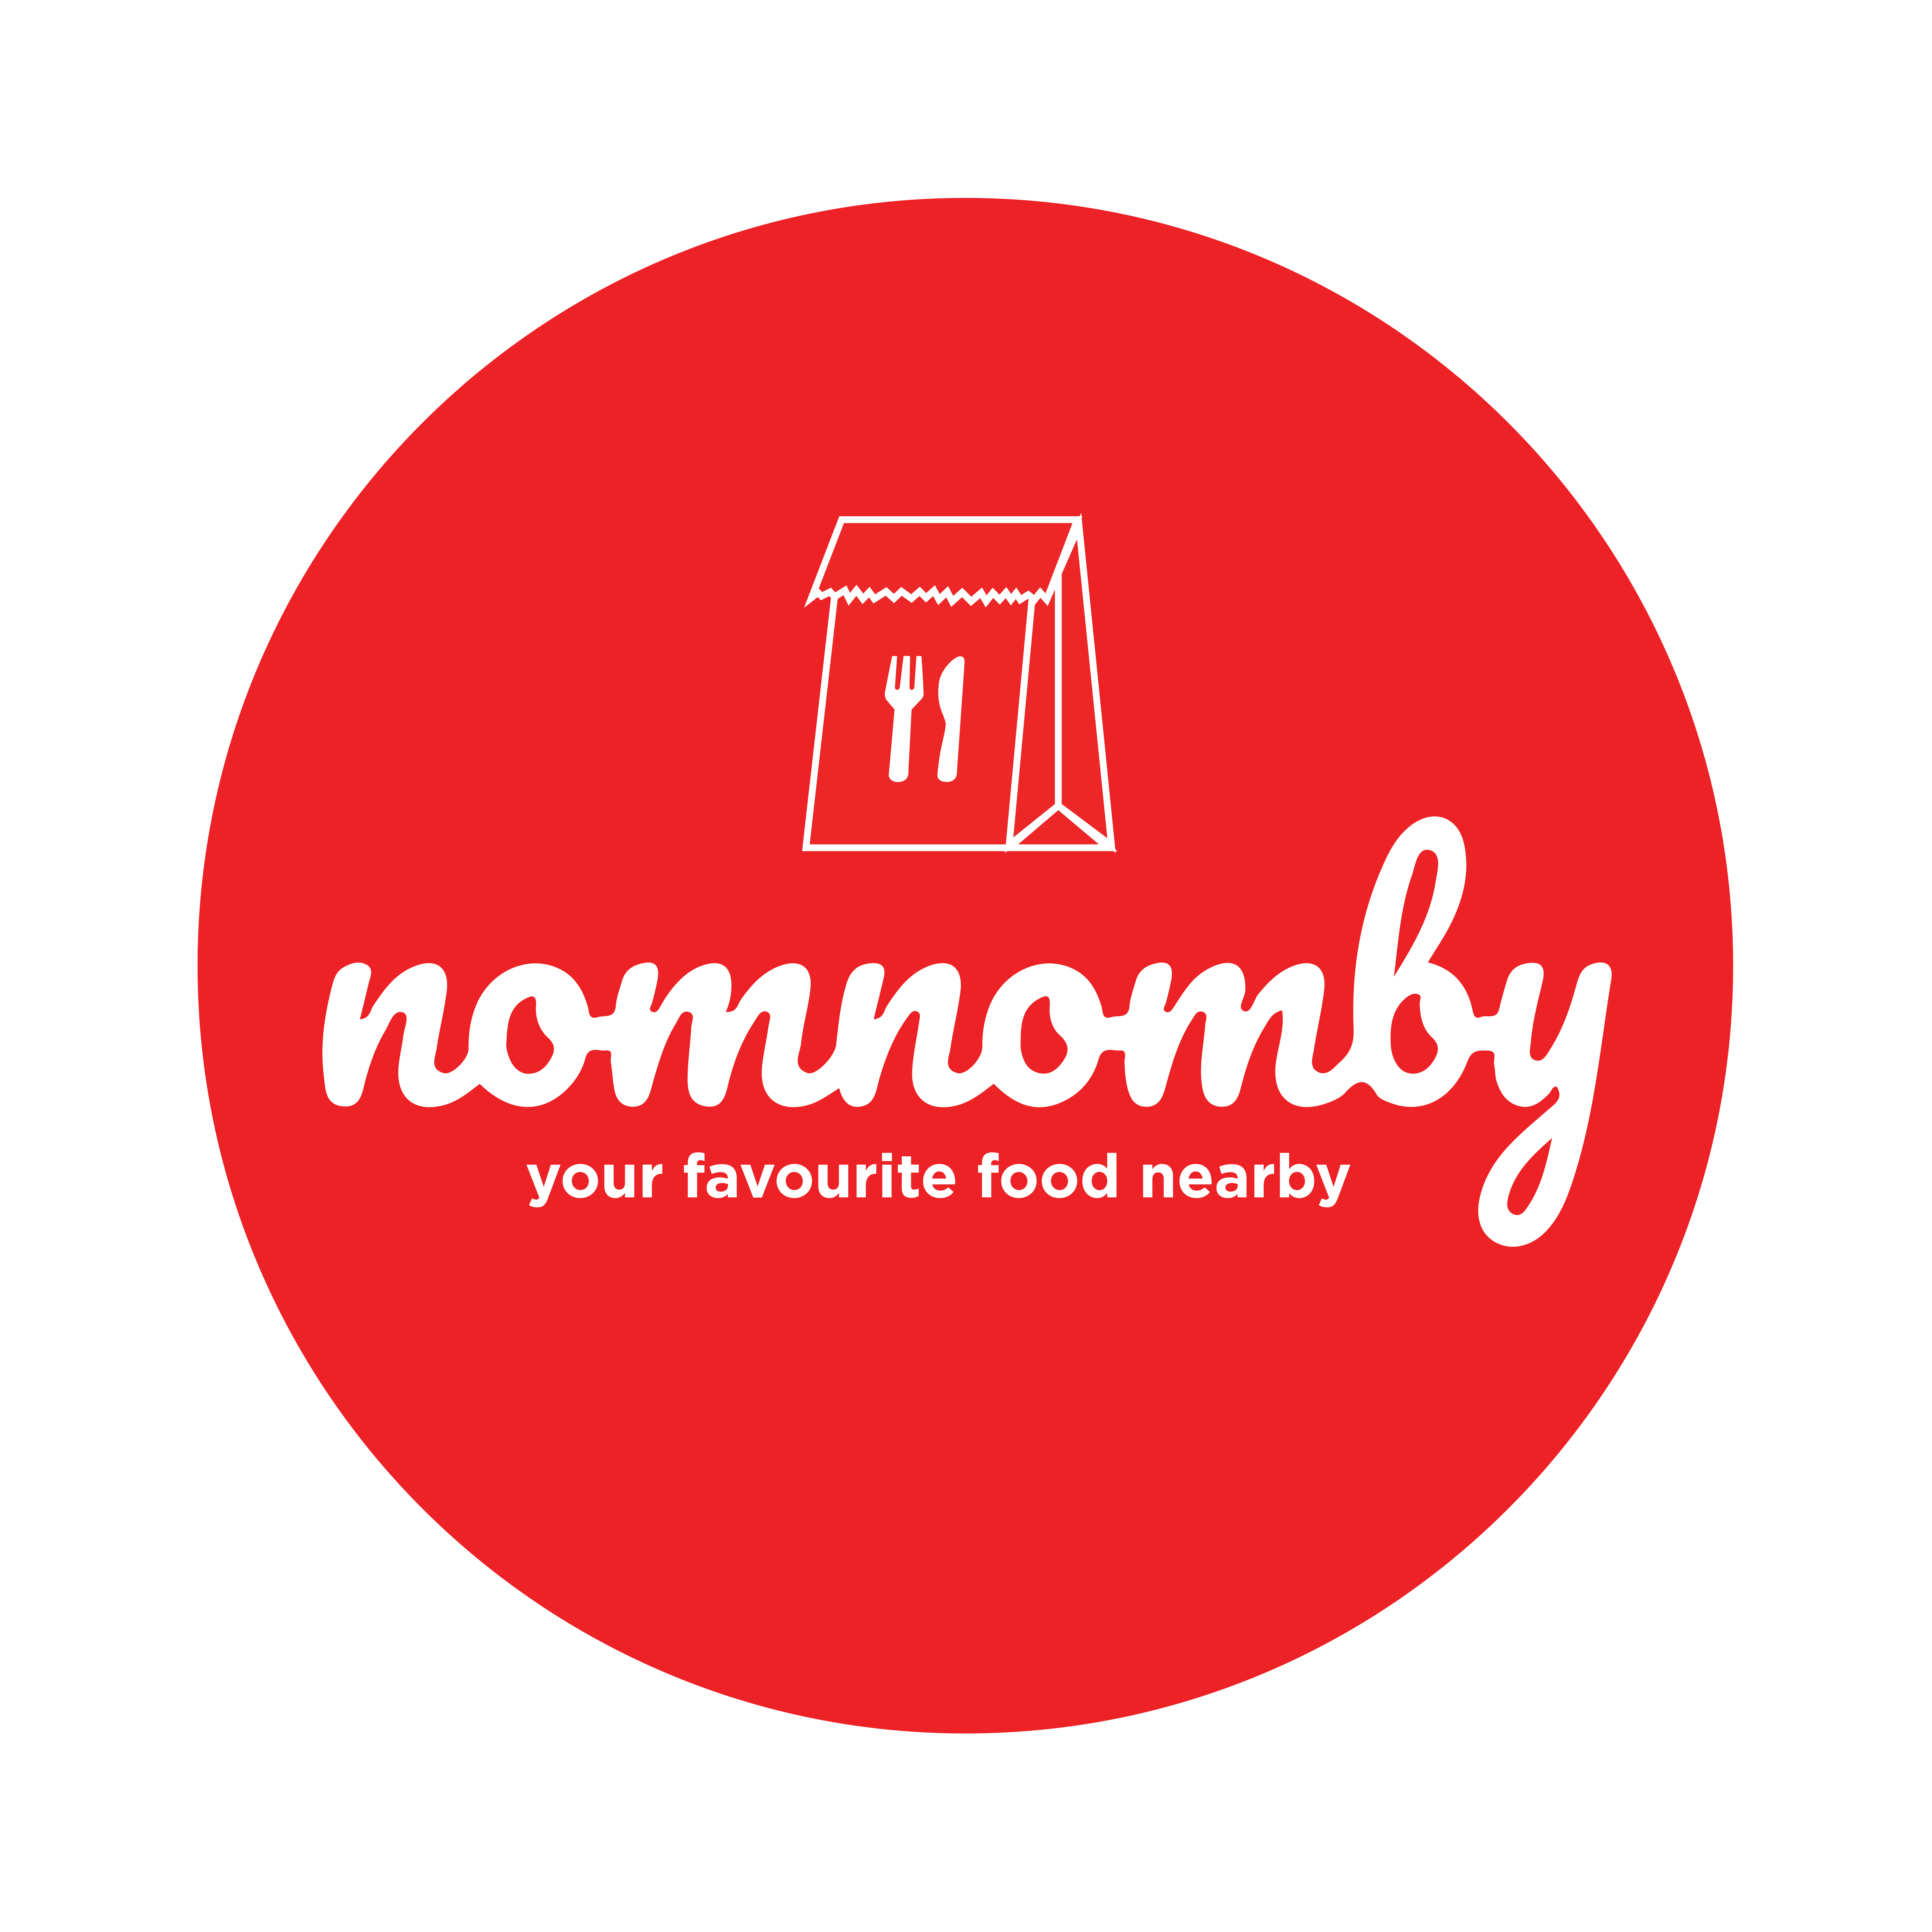 nomnomby - your favourite food nearby company logo